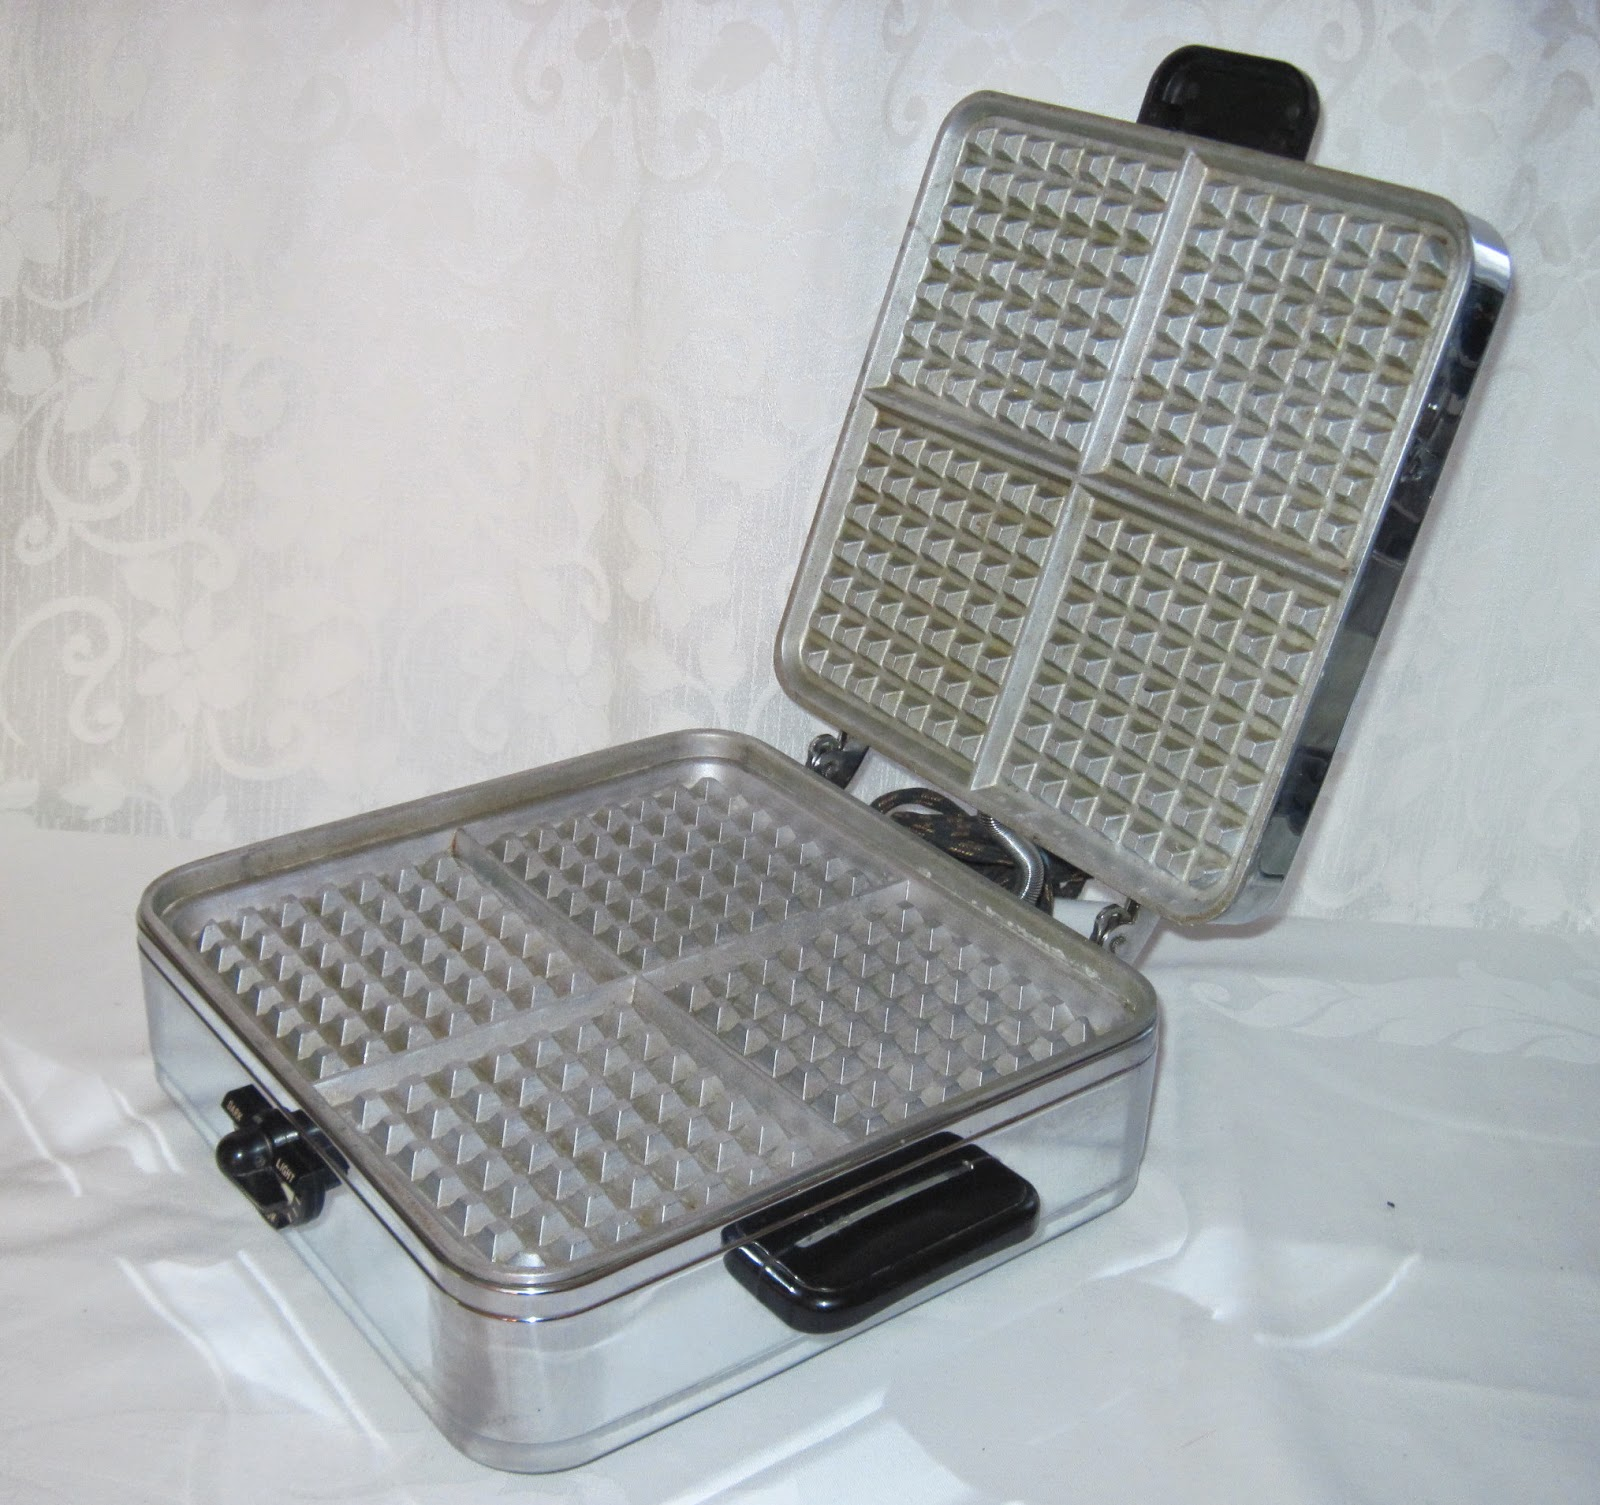 Stick On A Waffle Iron ~ The only way to grease your waffle iron garden of eating